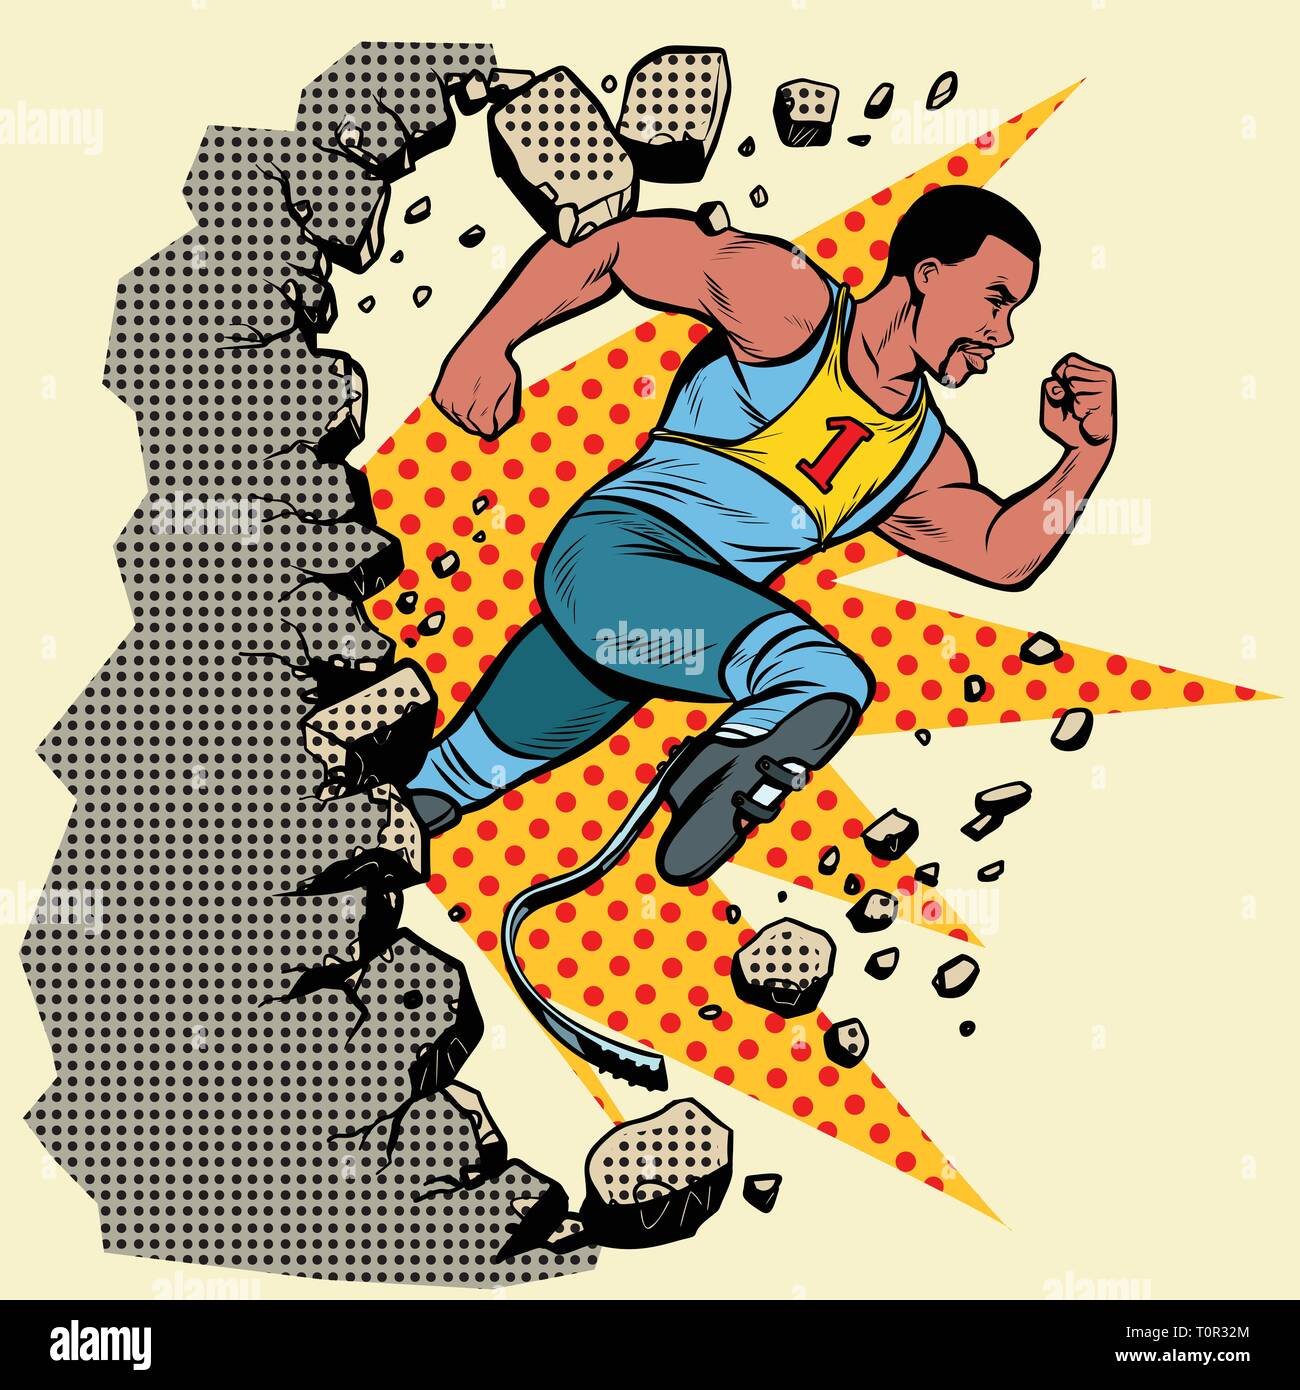 breaks the wall. disabled African runner with leg prostheses running forward. sports competition. Pop art retro vector illustration vintage kitsch - Stock Vector